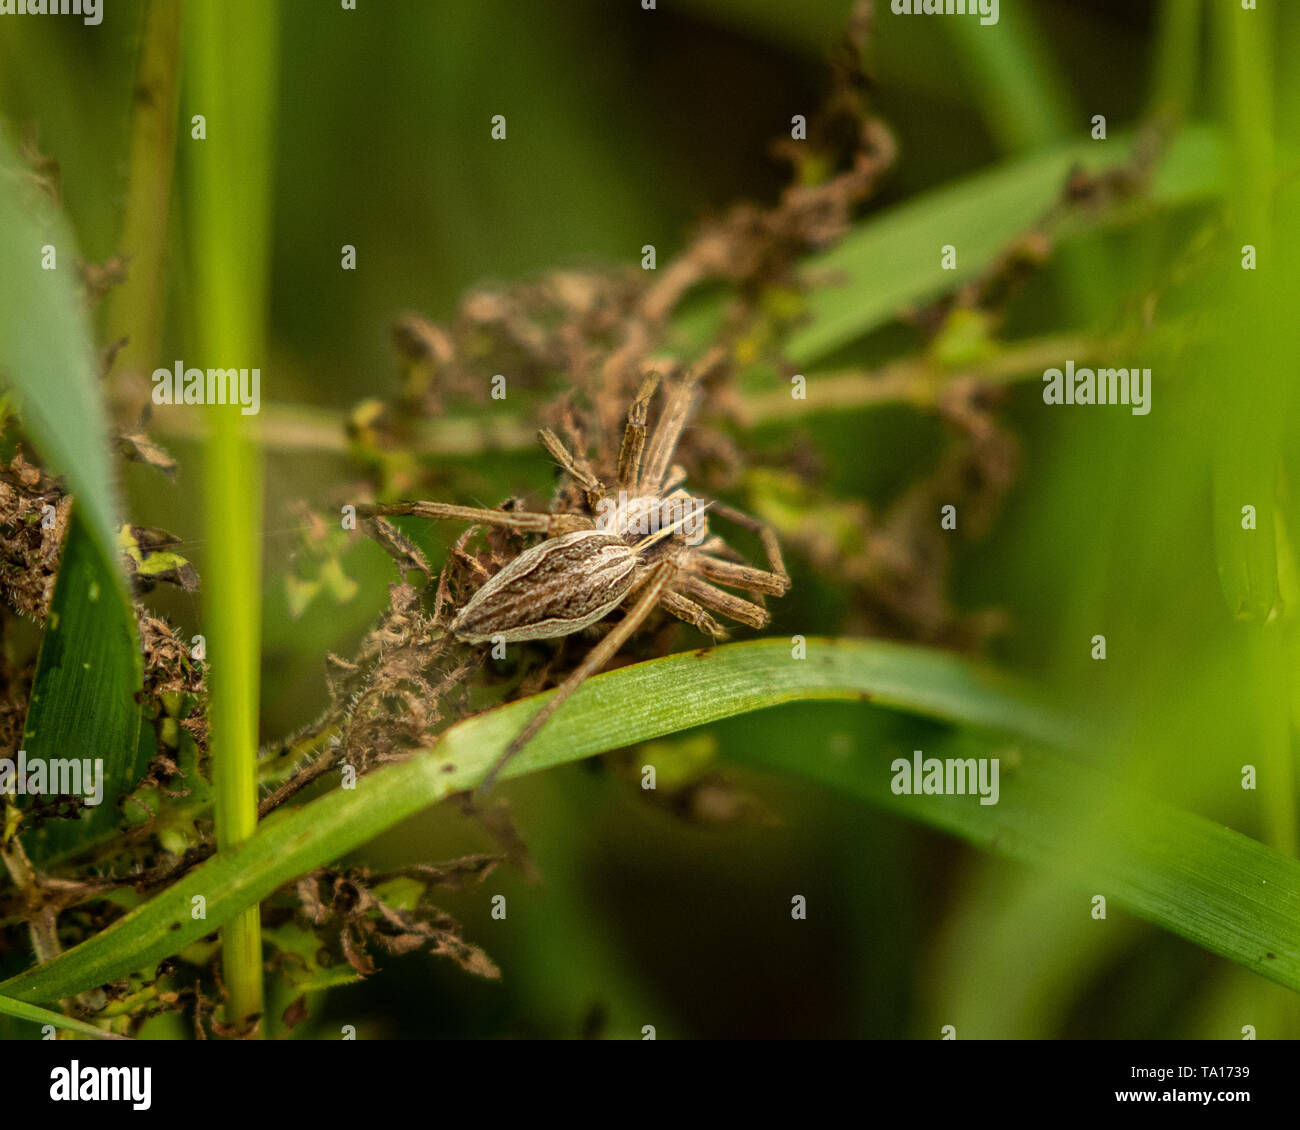 Buzzing Spider hiding in the long grass near Bells Mill, West Midlands, UK. - Stock Image